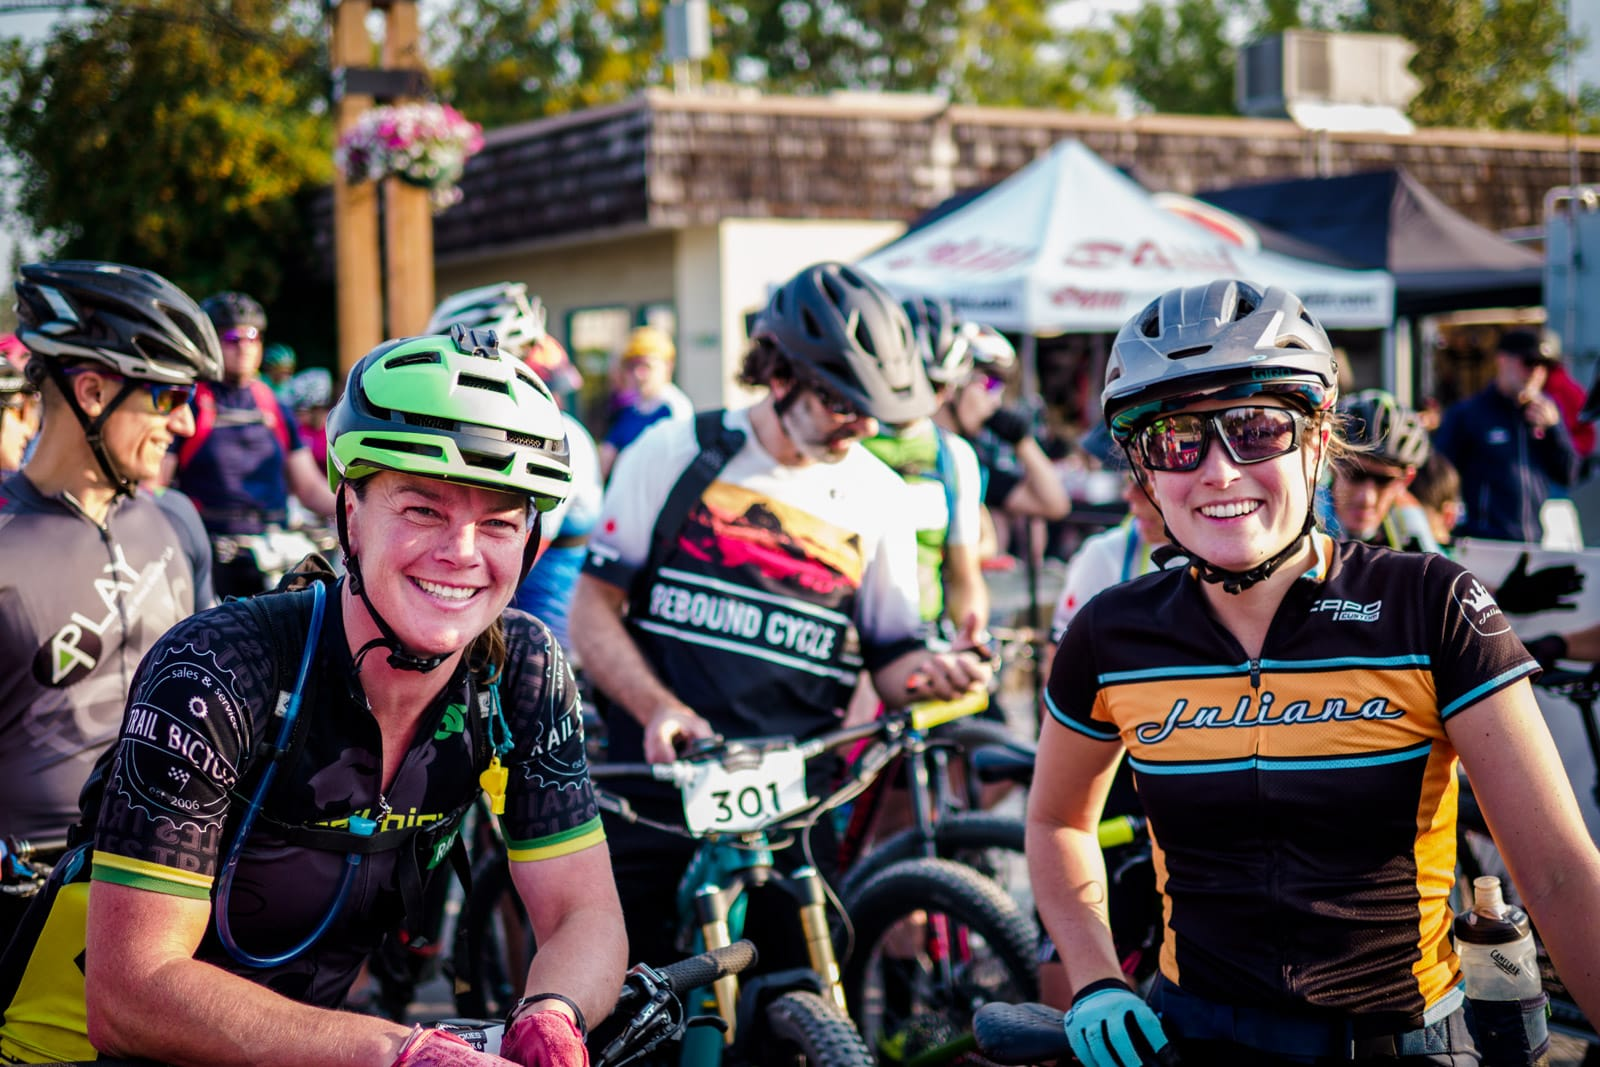 Santa Cruz Bicycles - And More Smiles from the Team - Singletrack6